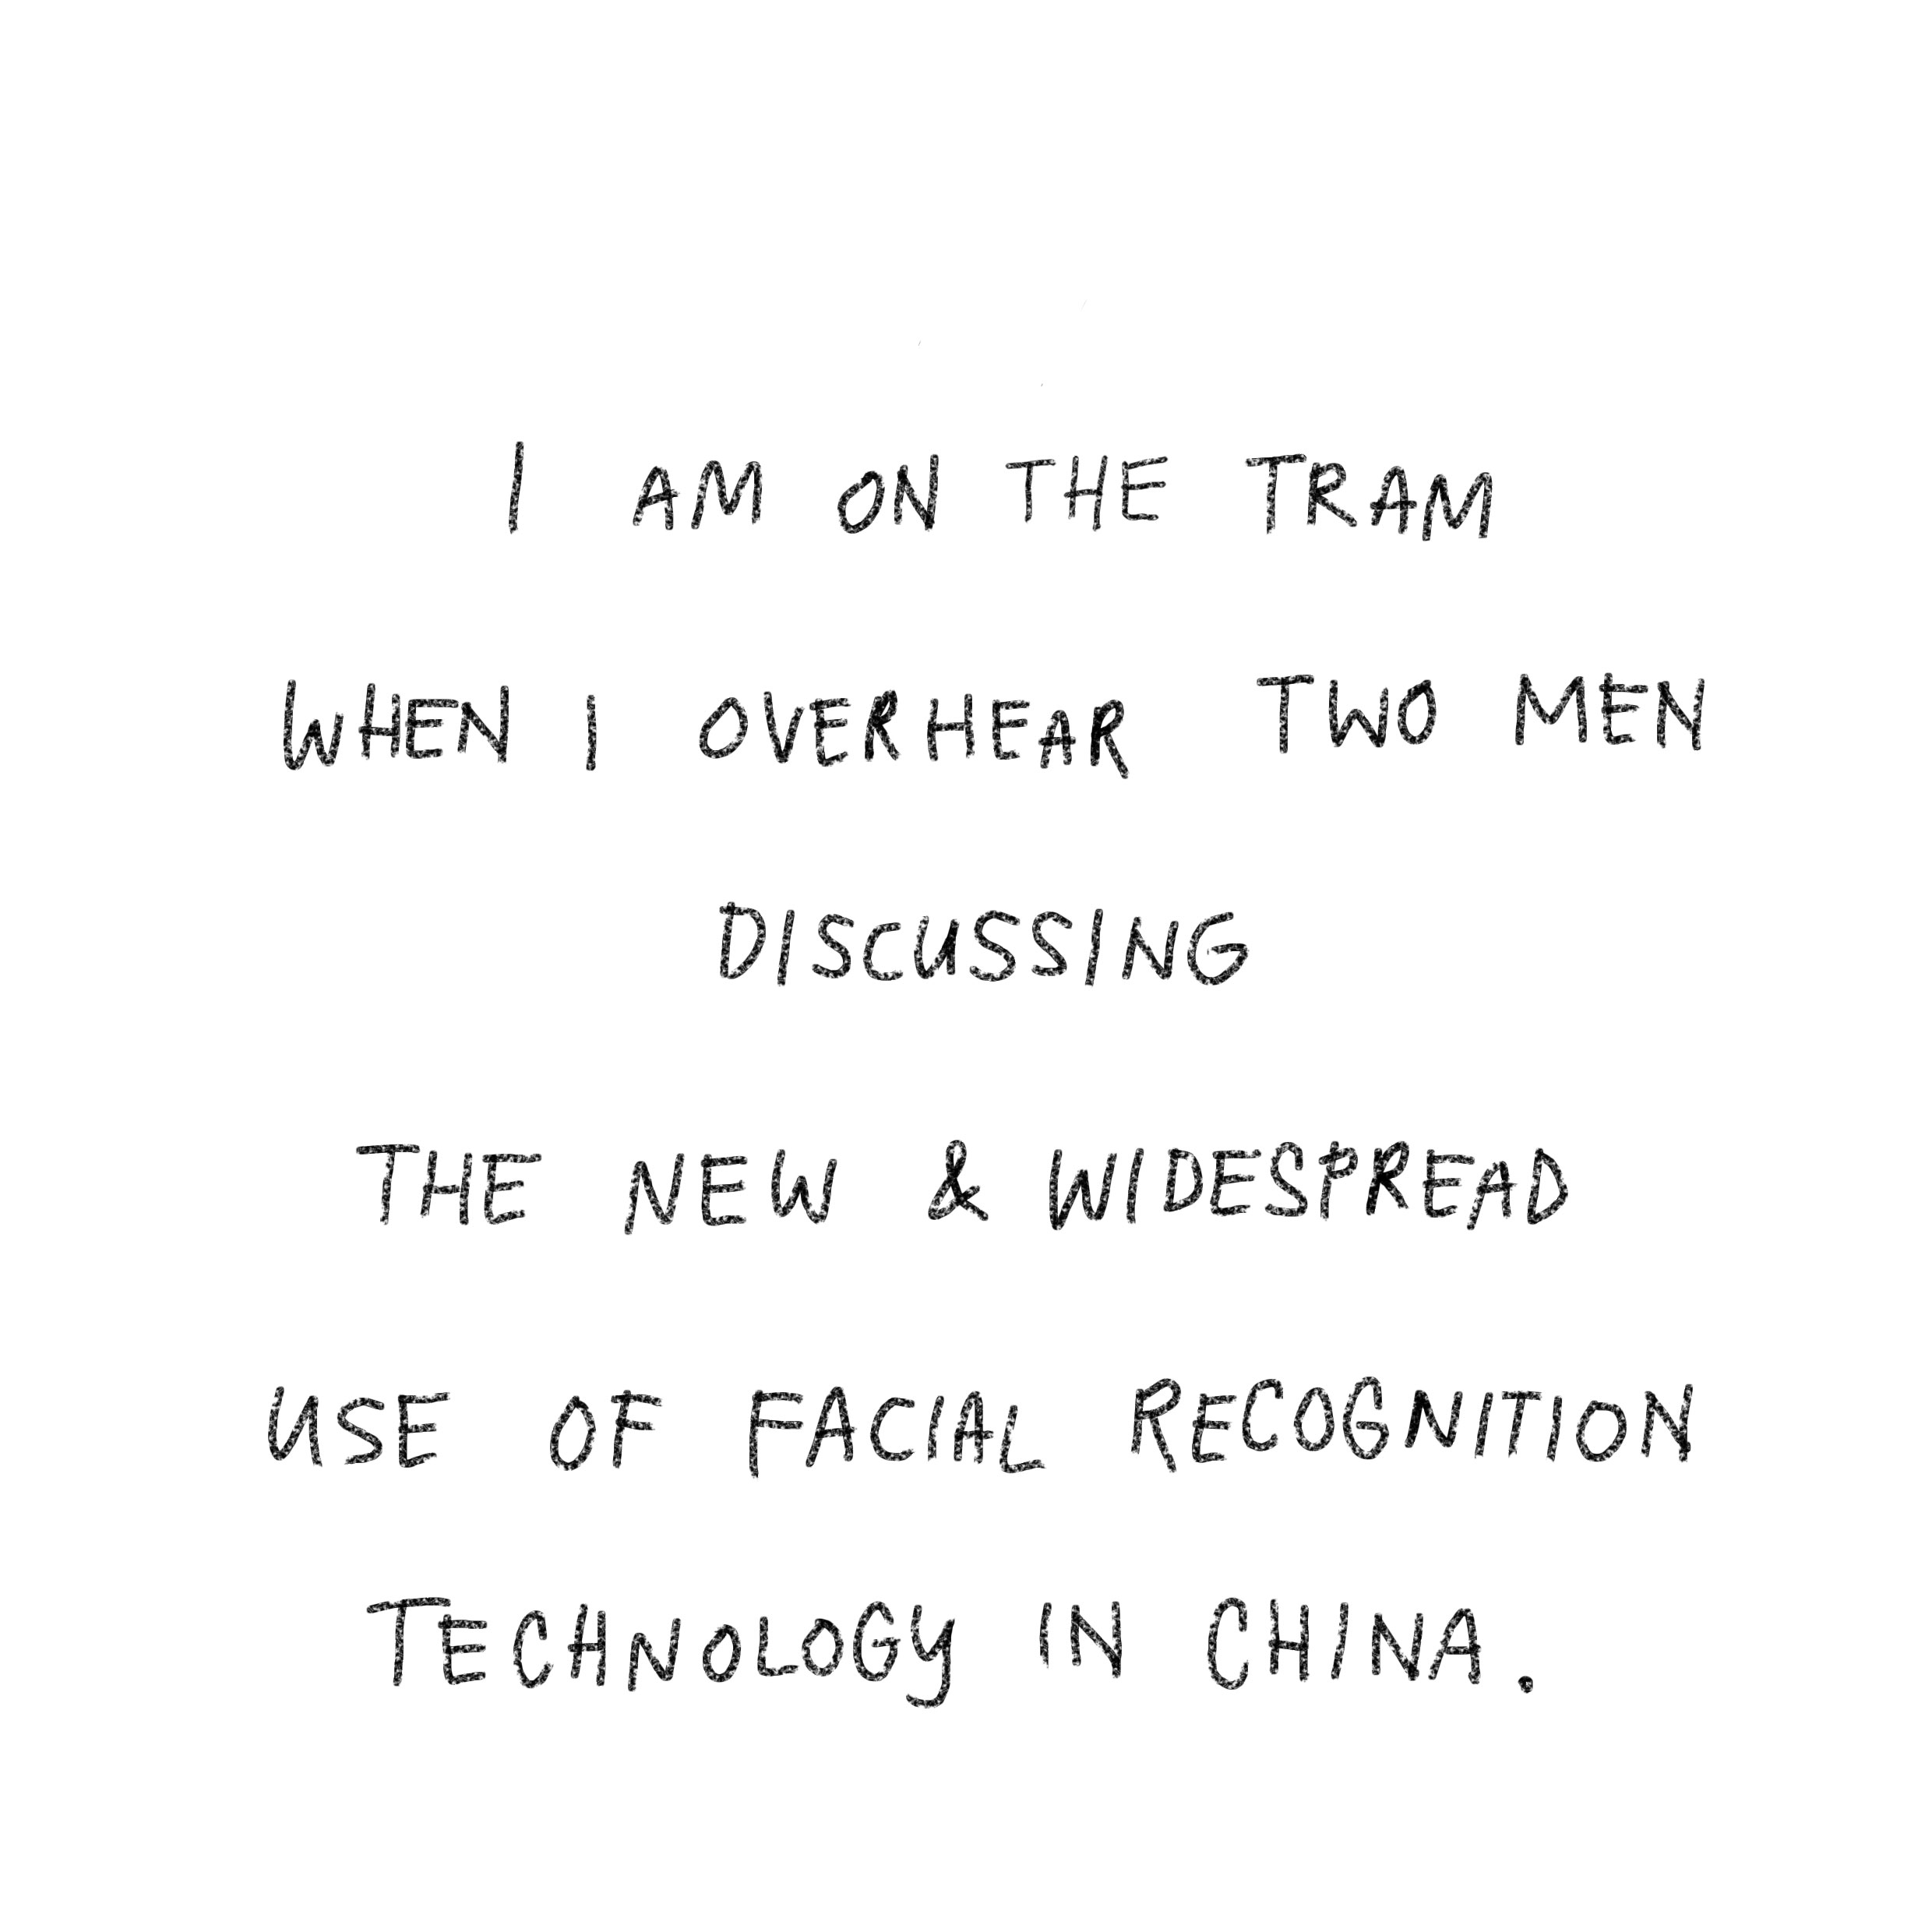 'I am on the tram when I overhear two men discussing the new and widespread use of facial recognition technology in China.'